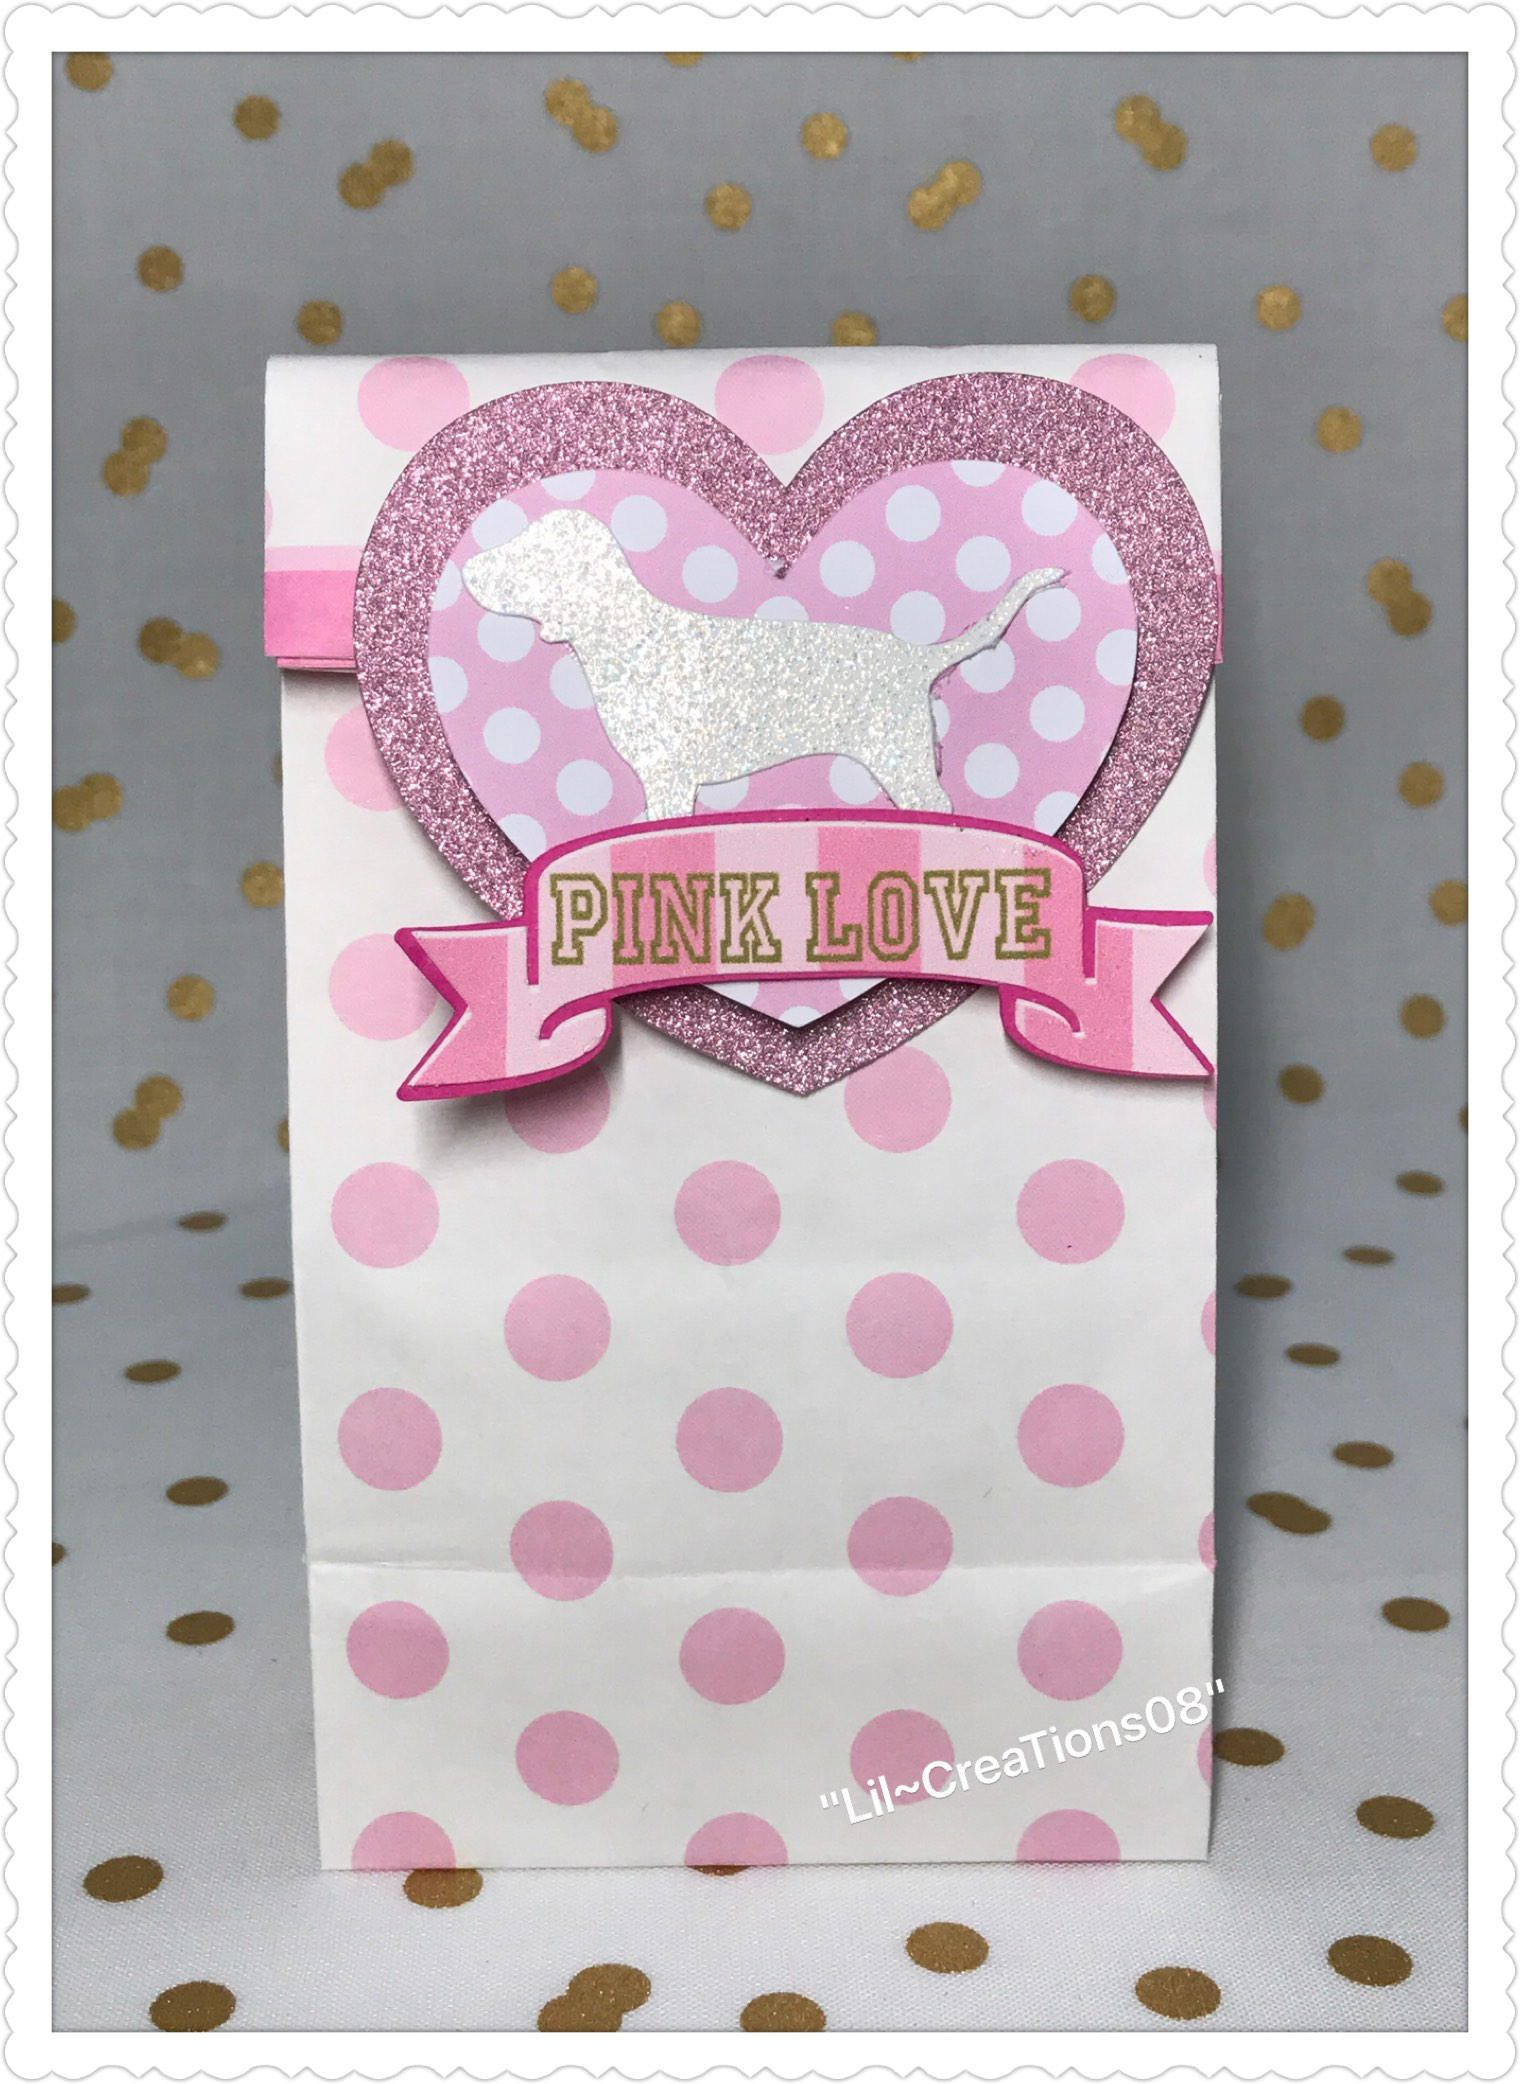 8 Pink Heart Inspired Treats Bag | Favors and Gumball